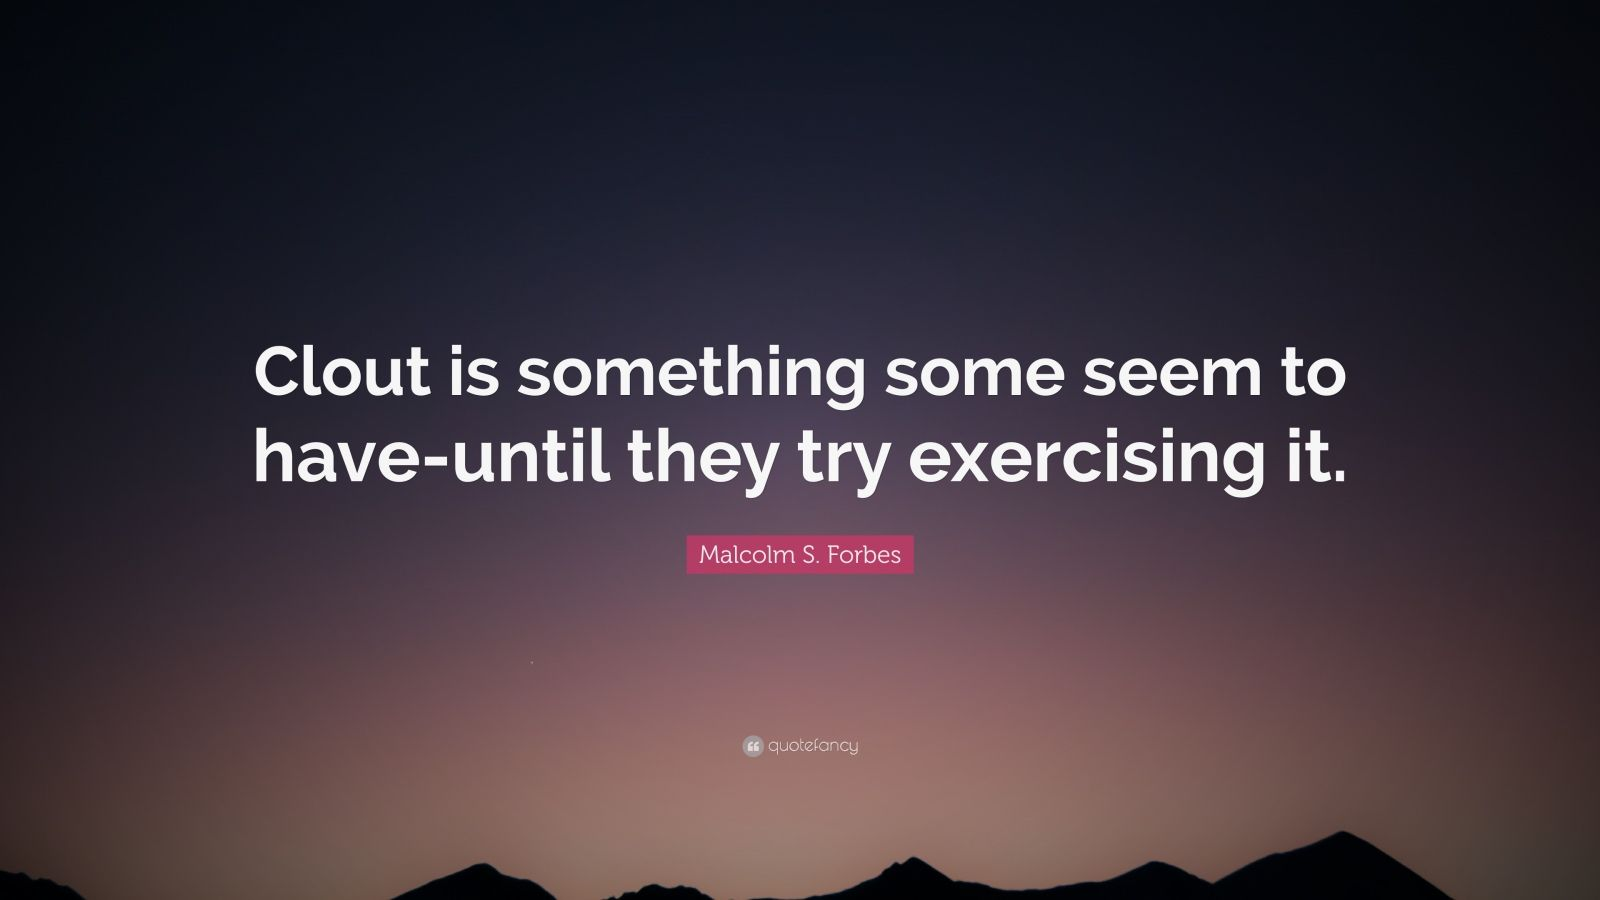 """Malcolm S. Forbes Quote: """"Clout is something some seem to have-until they try exercising it."""""""